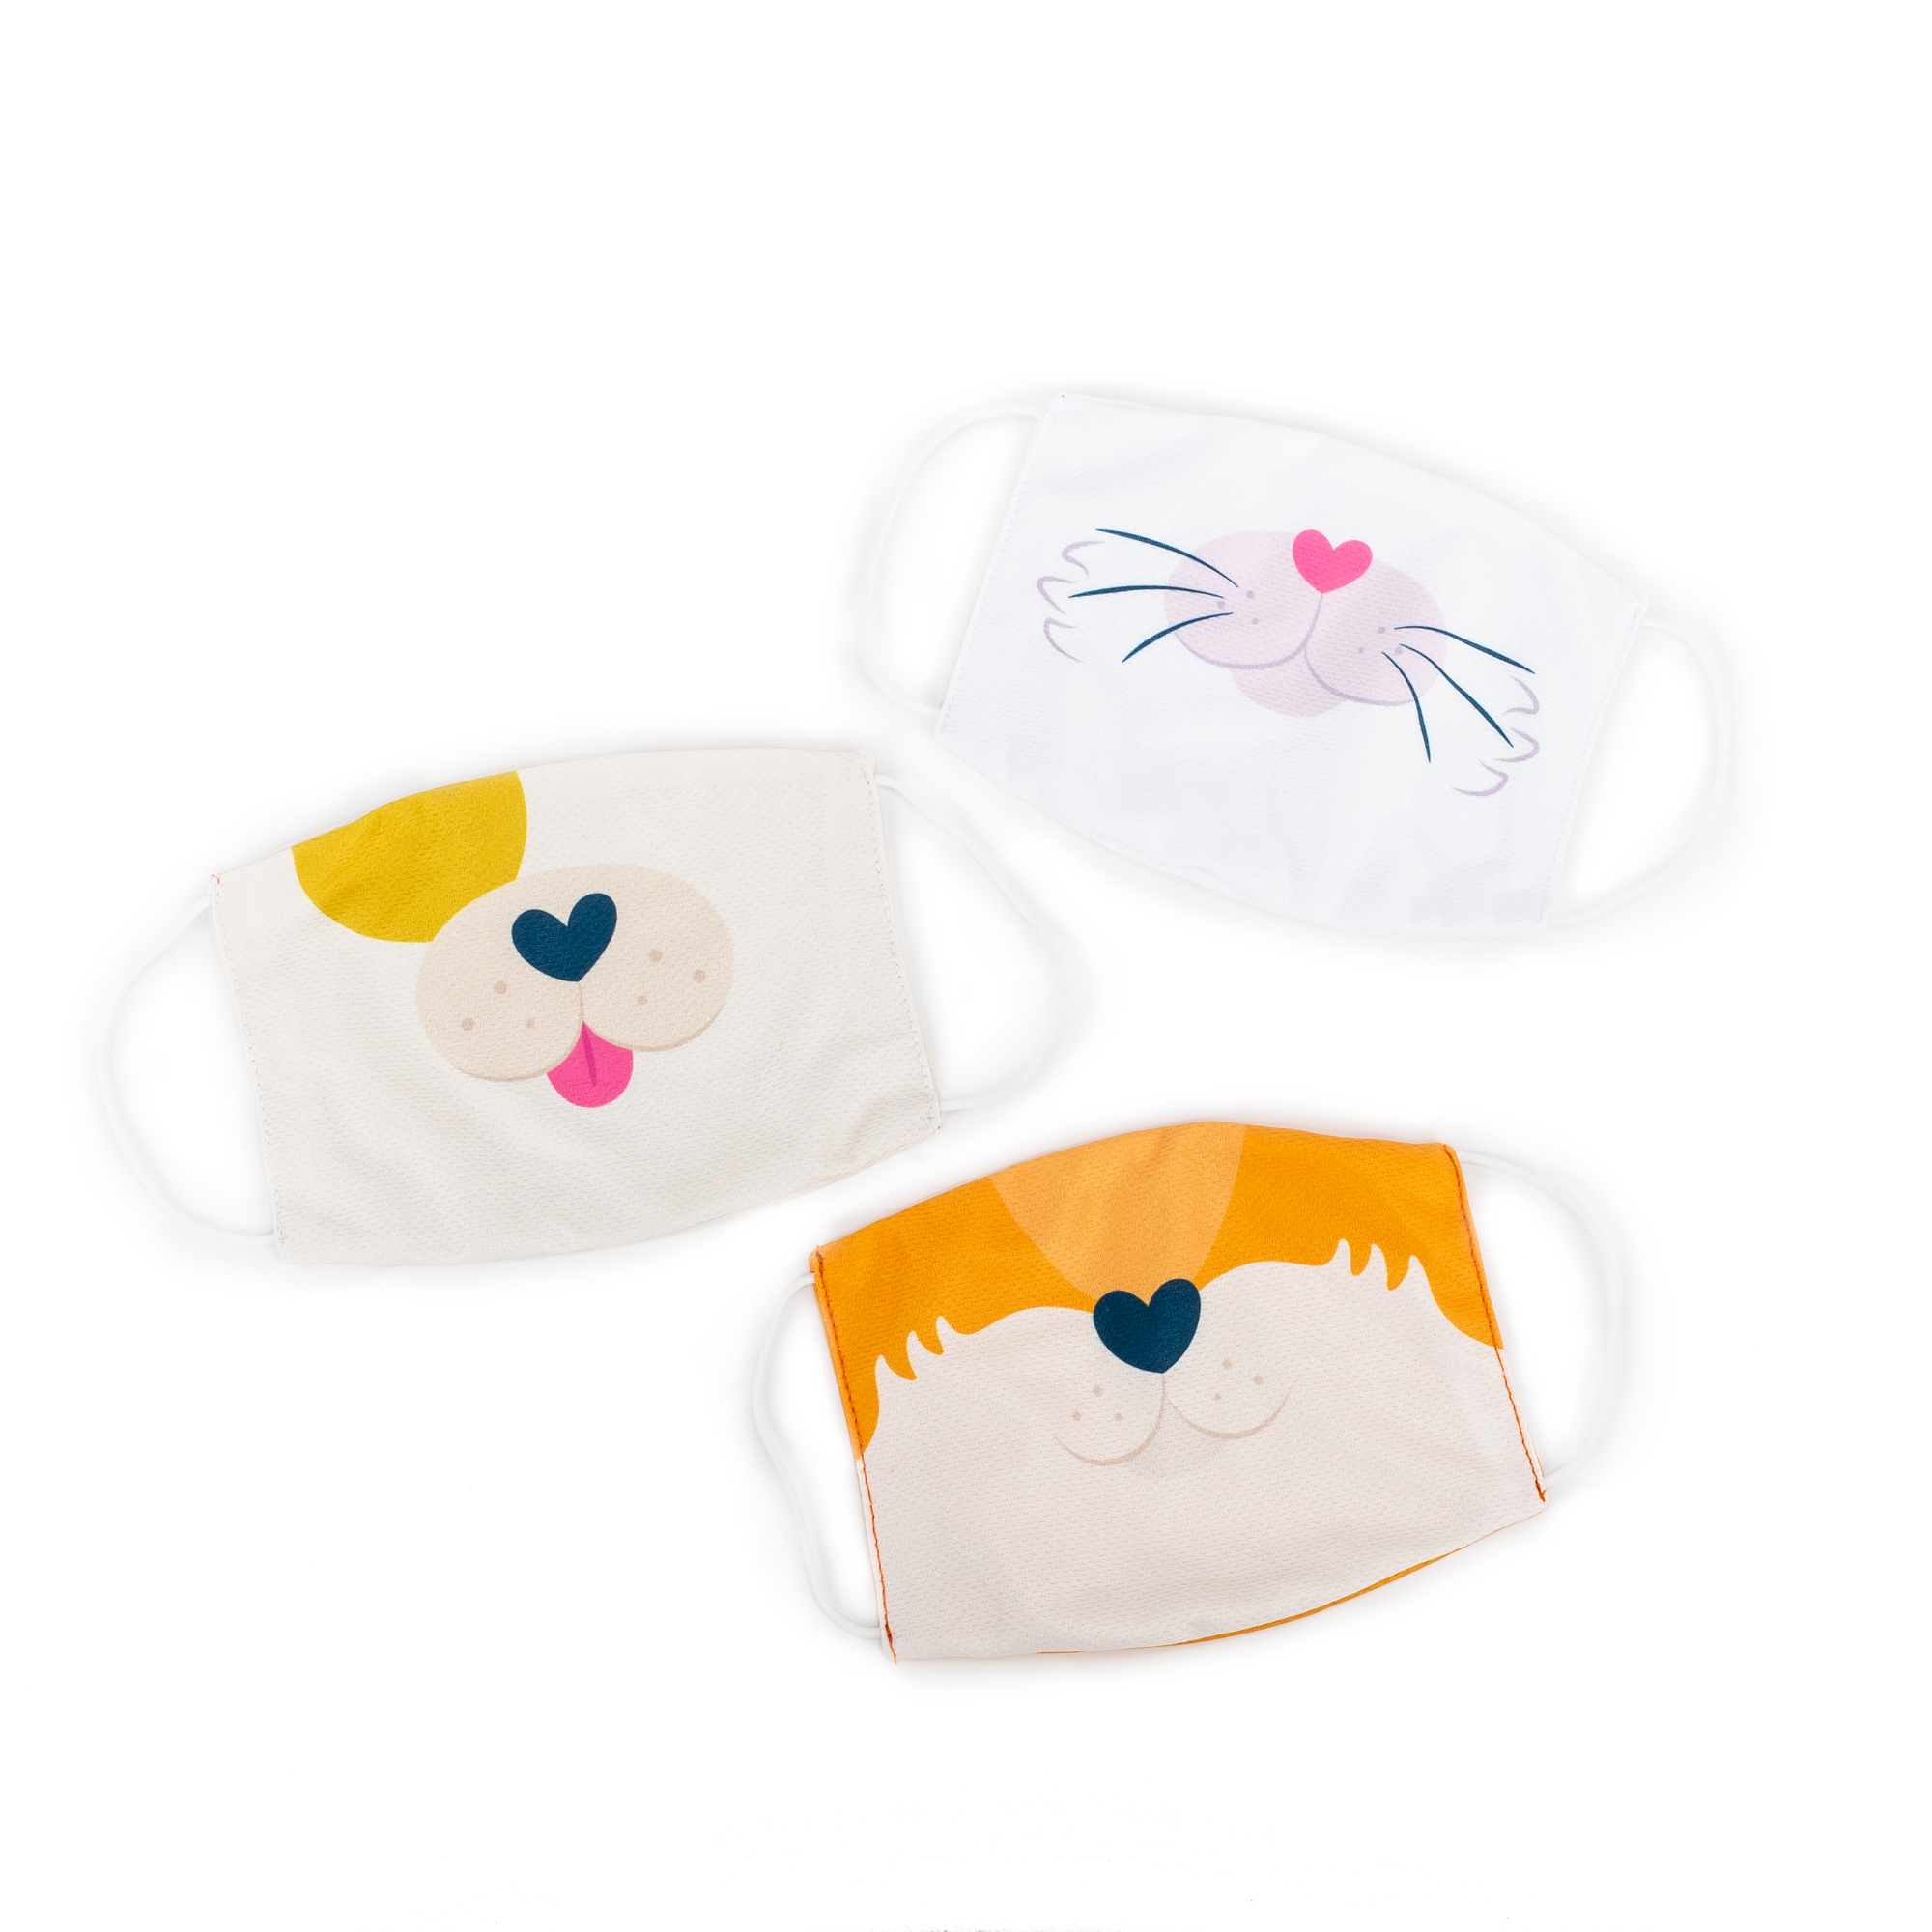 Kids' Face Masks 3-Pack: Puppy, Kitty, Fox Set